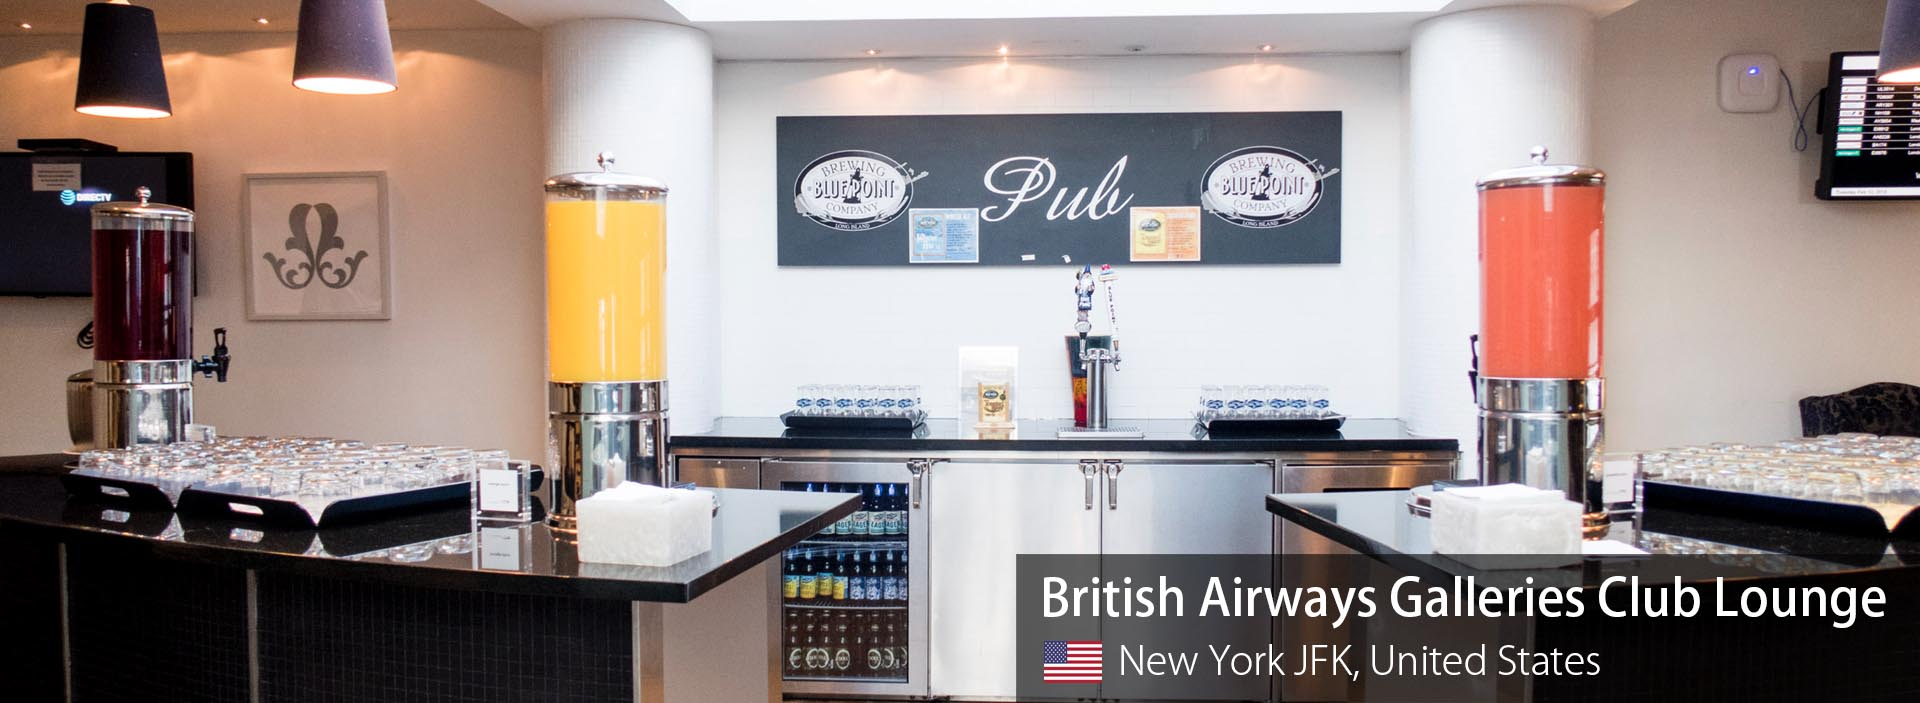 Lounge Review: British Airways Galleries Club Lounge at New York JFK